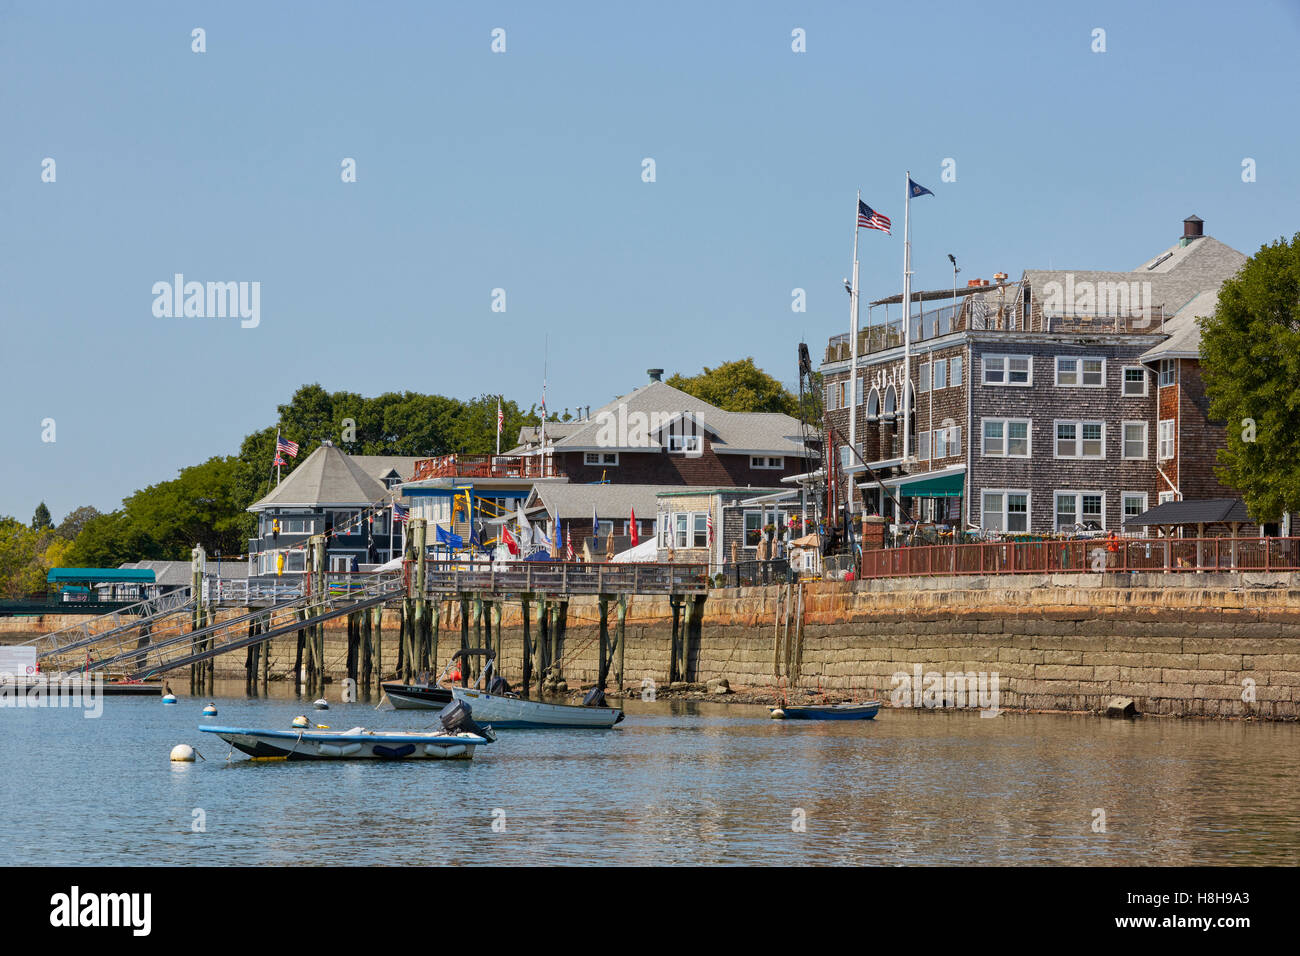 South Boston Yacht Club, Columbia Yacht Club, Club Náutico del puerto de Boston, el sur de Boston, Massachusetts, Imagen De Stock